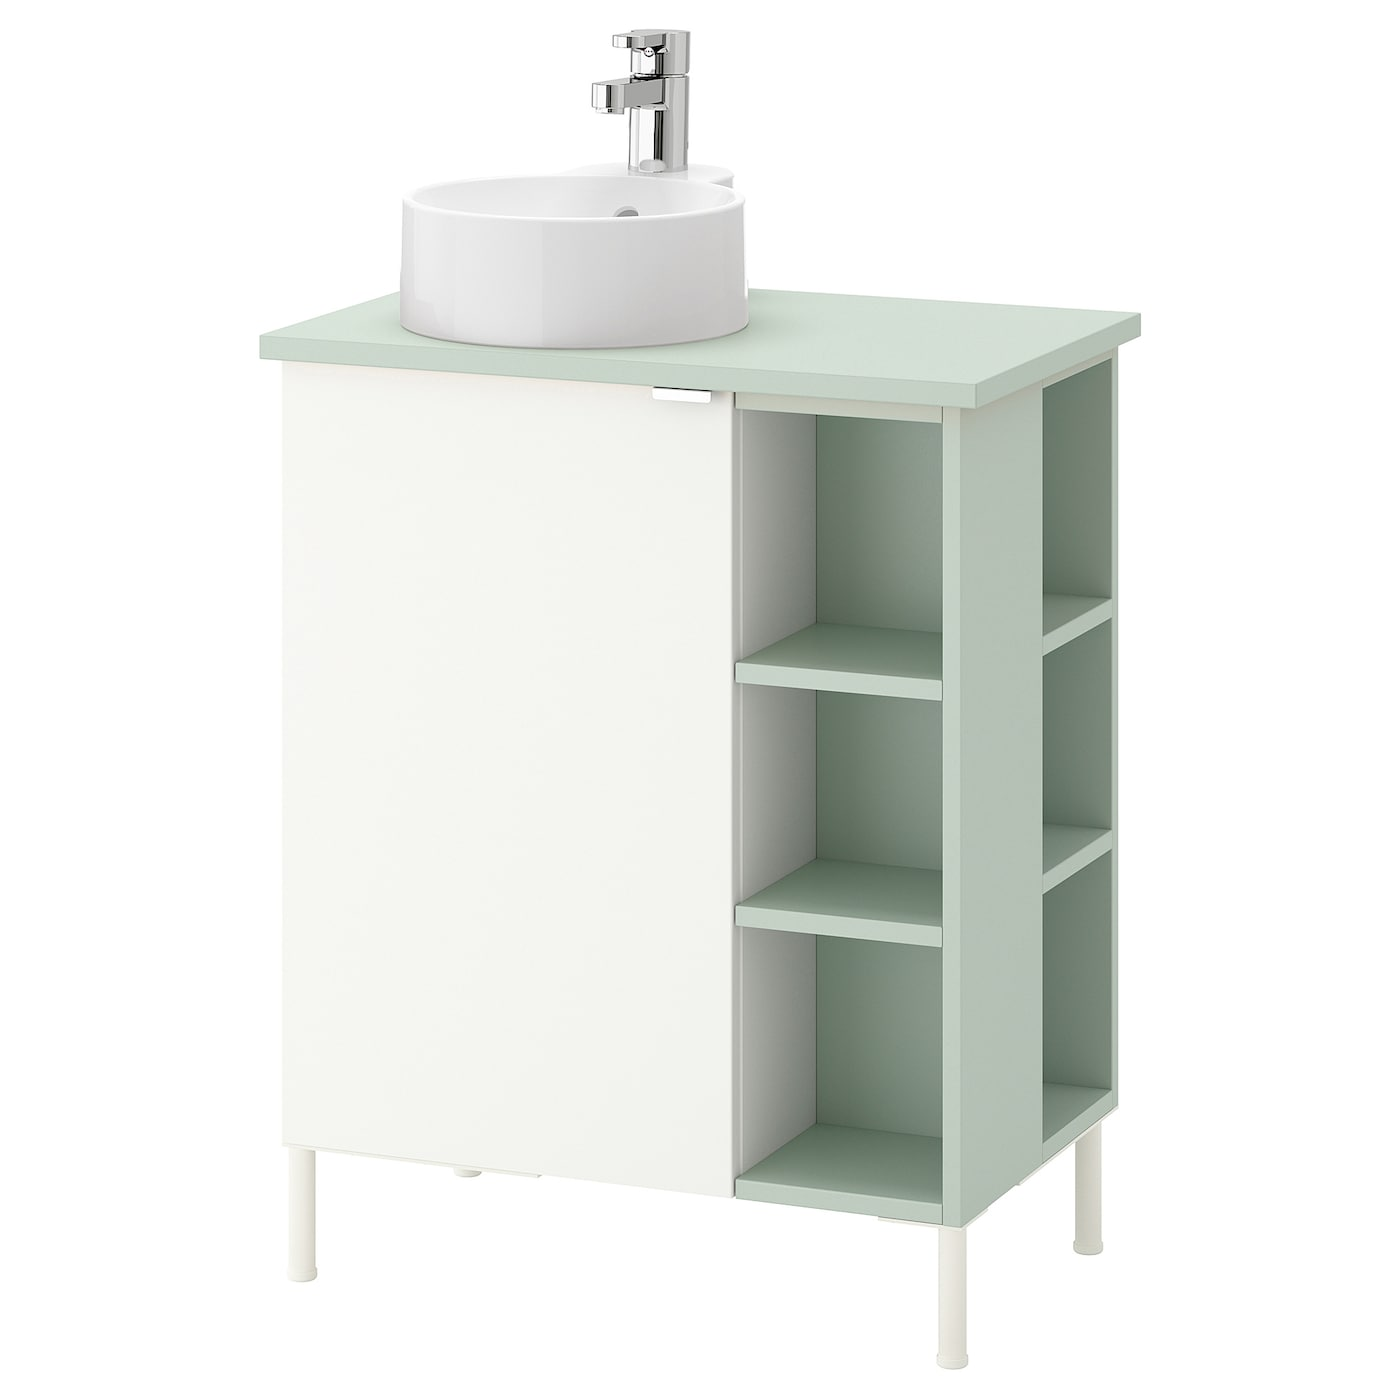 IKEA GUTVIKEN/LILLÅNGEN/VISKAN washbasin cab 1 door/2 end units